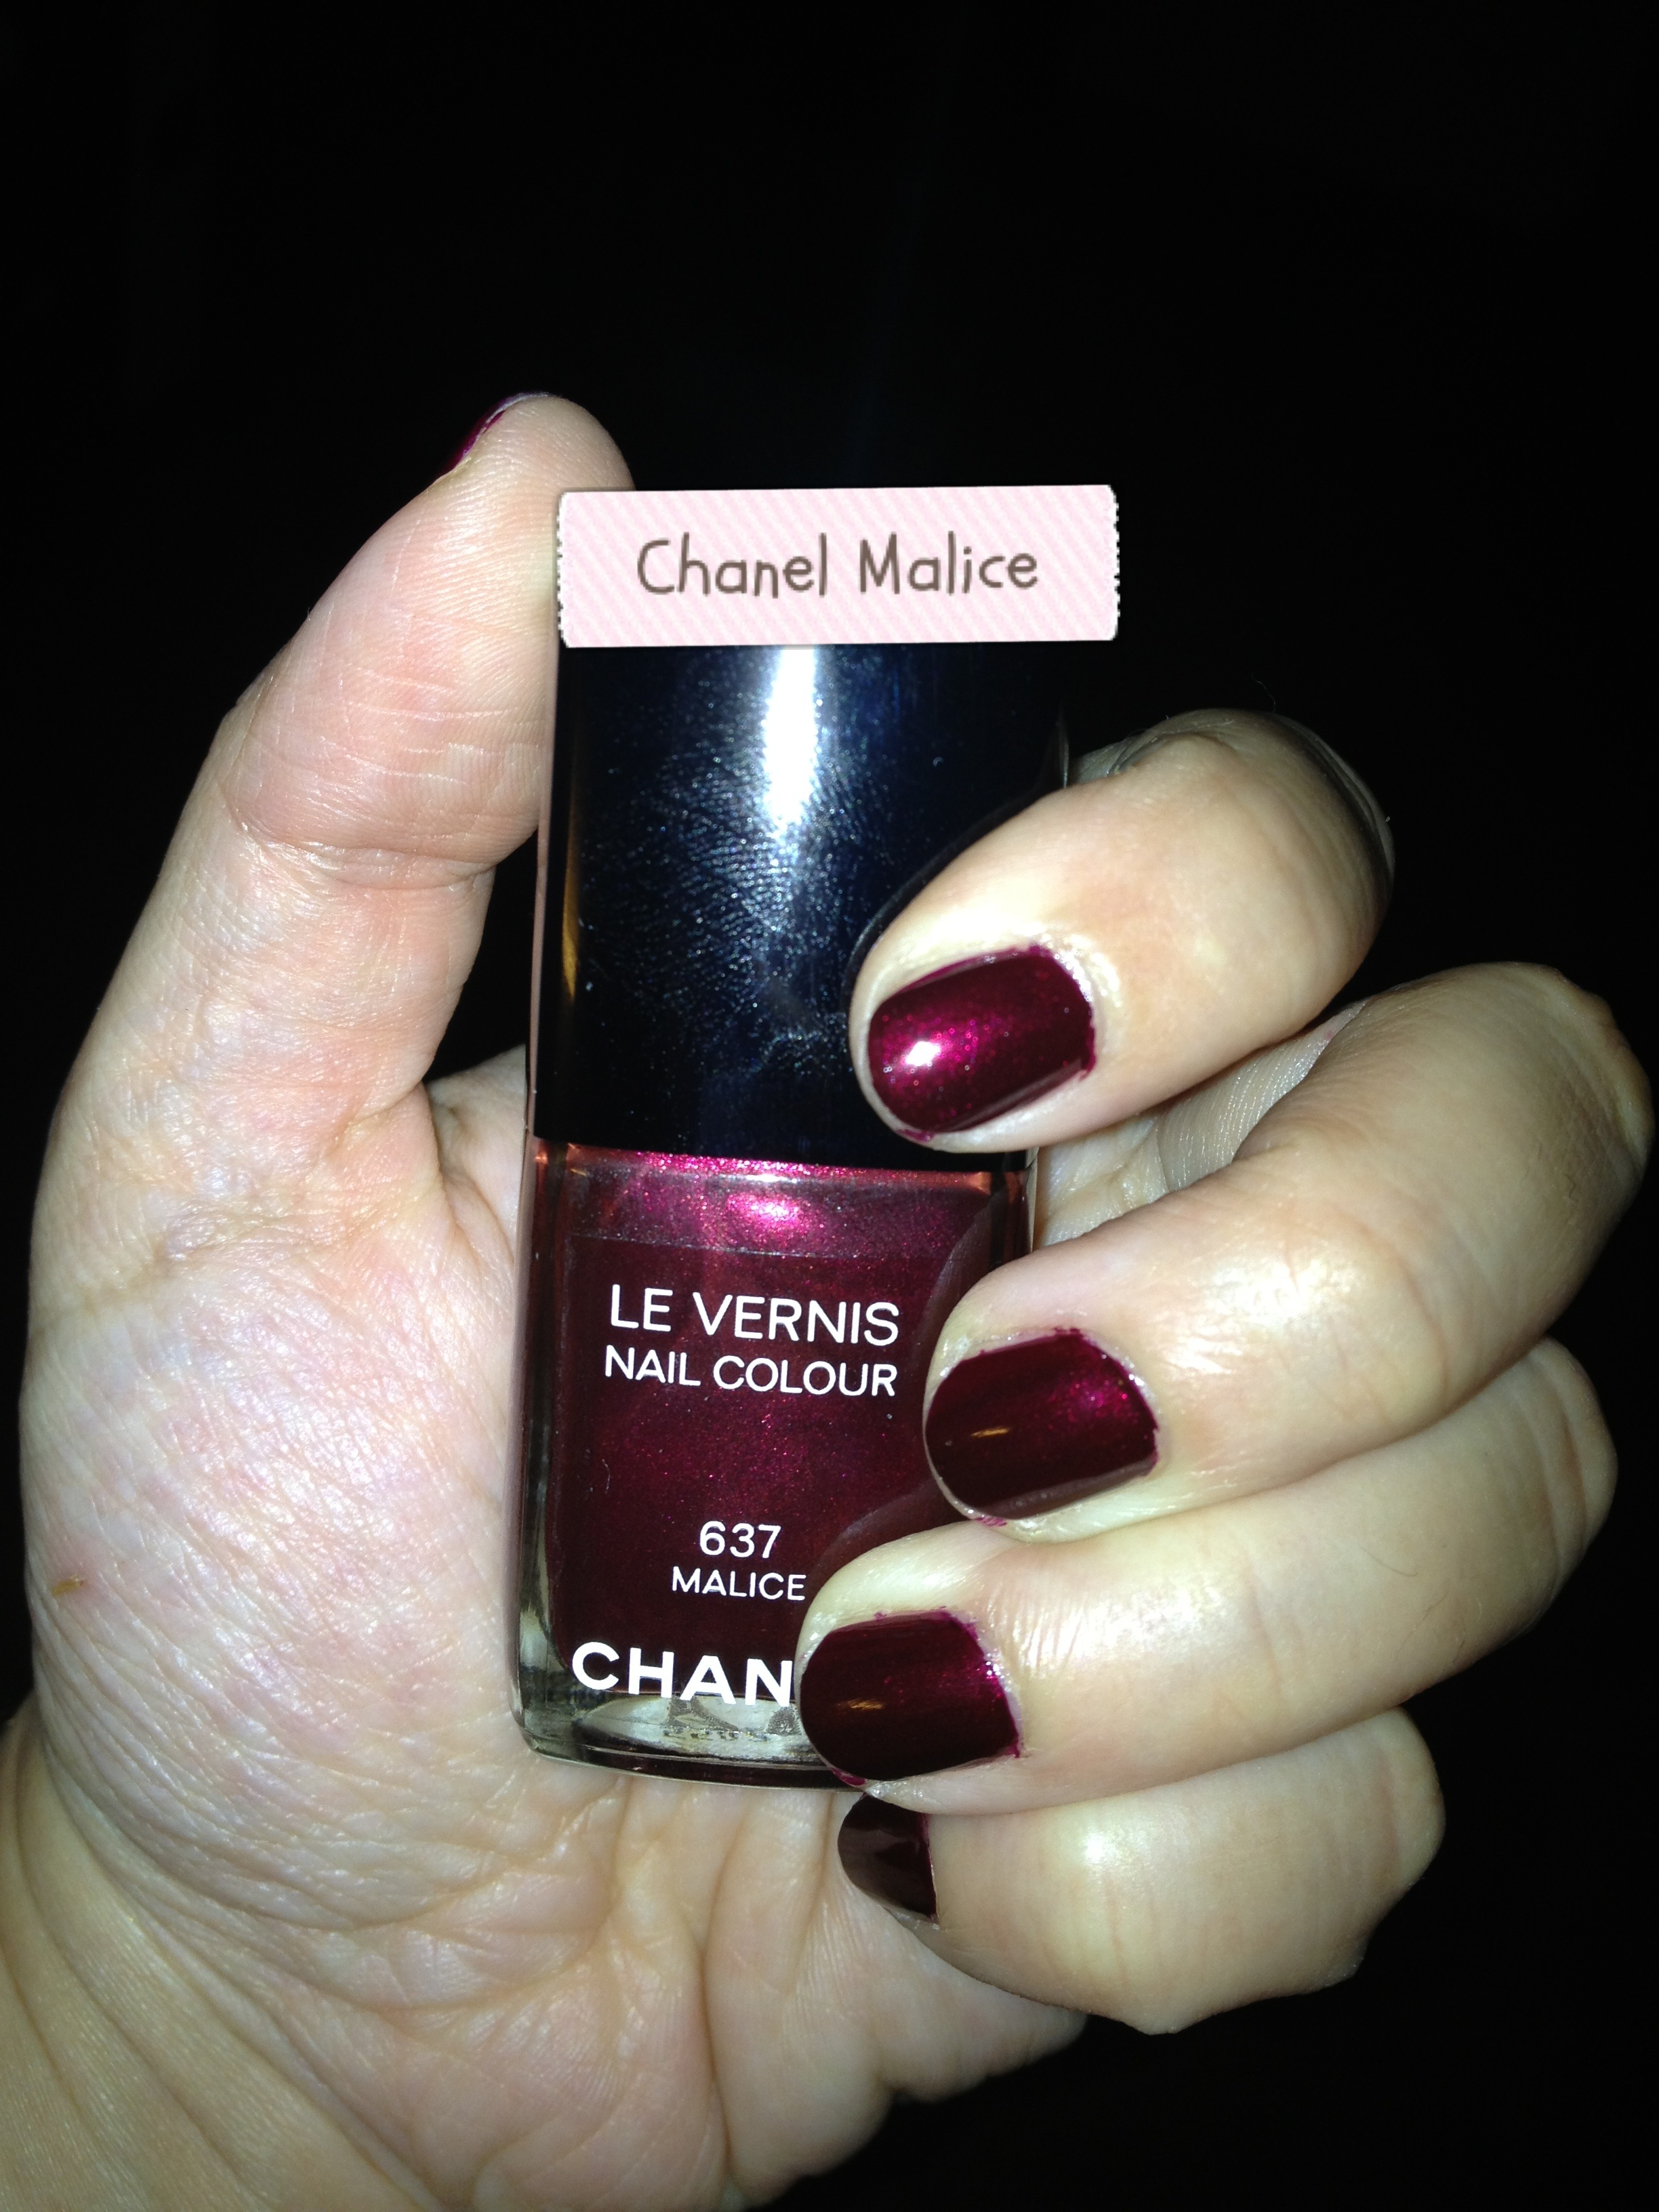 Diary of a Nail Polish Addict: November 2012 | Dallo Spazio